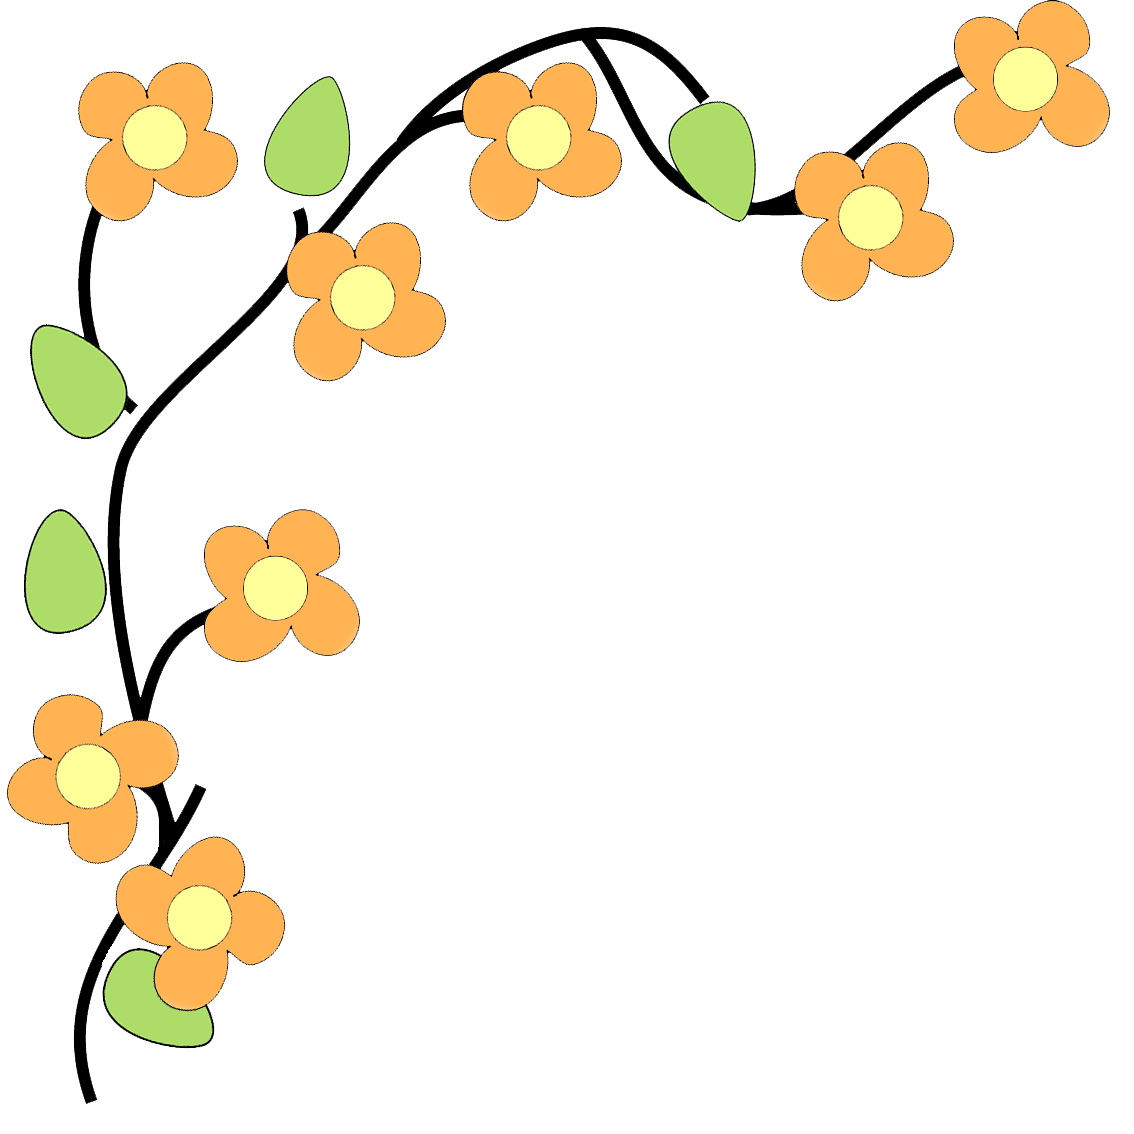 hight resolution of floral flower border clipart free images 2